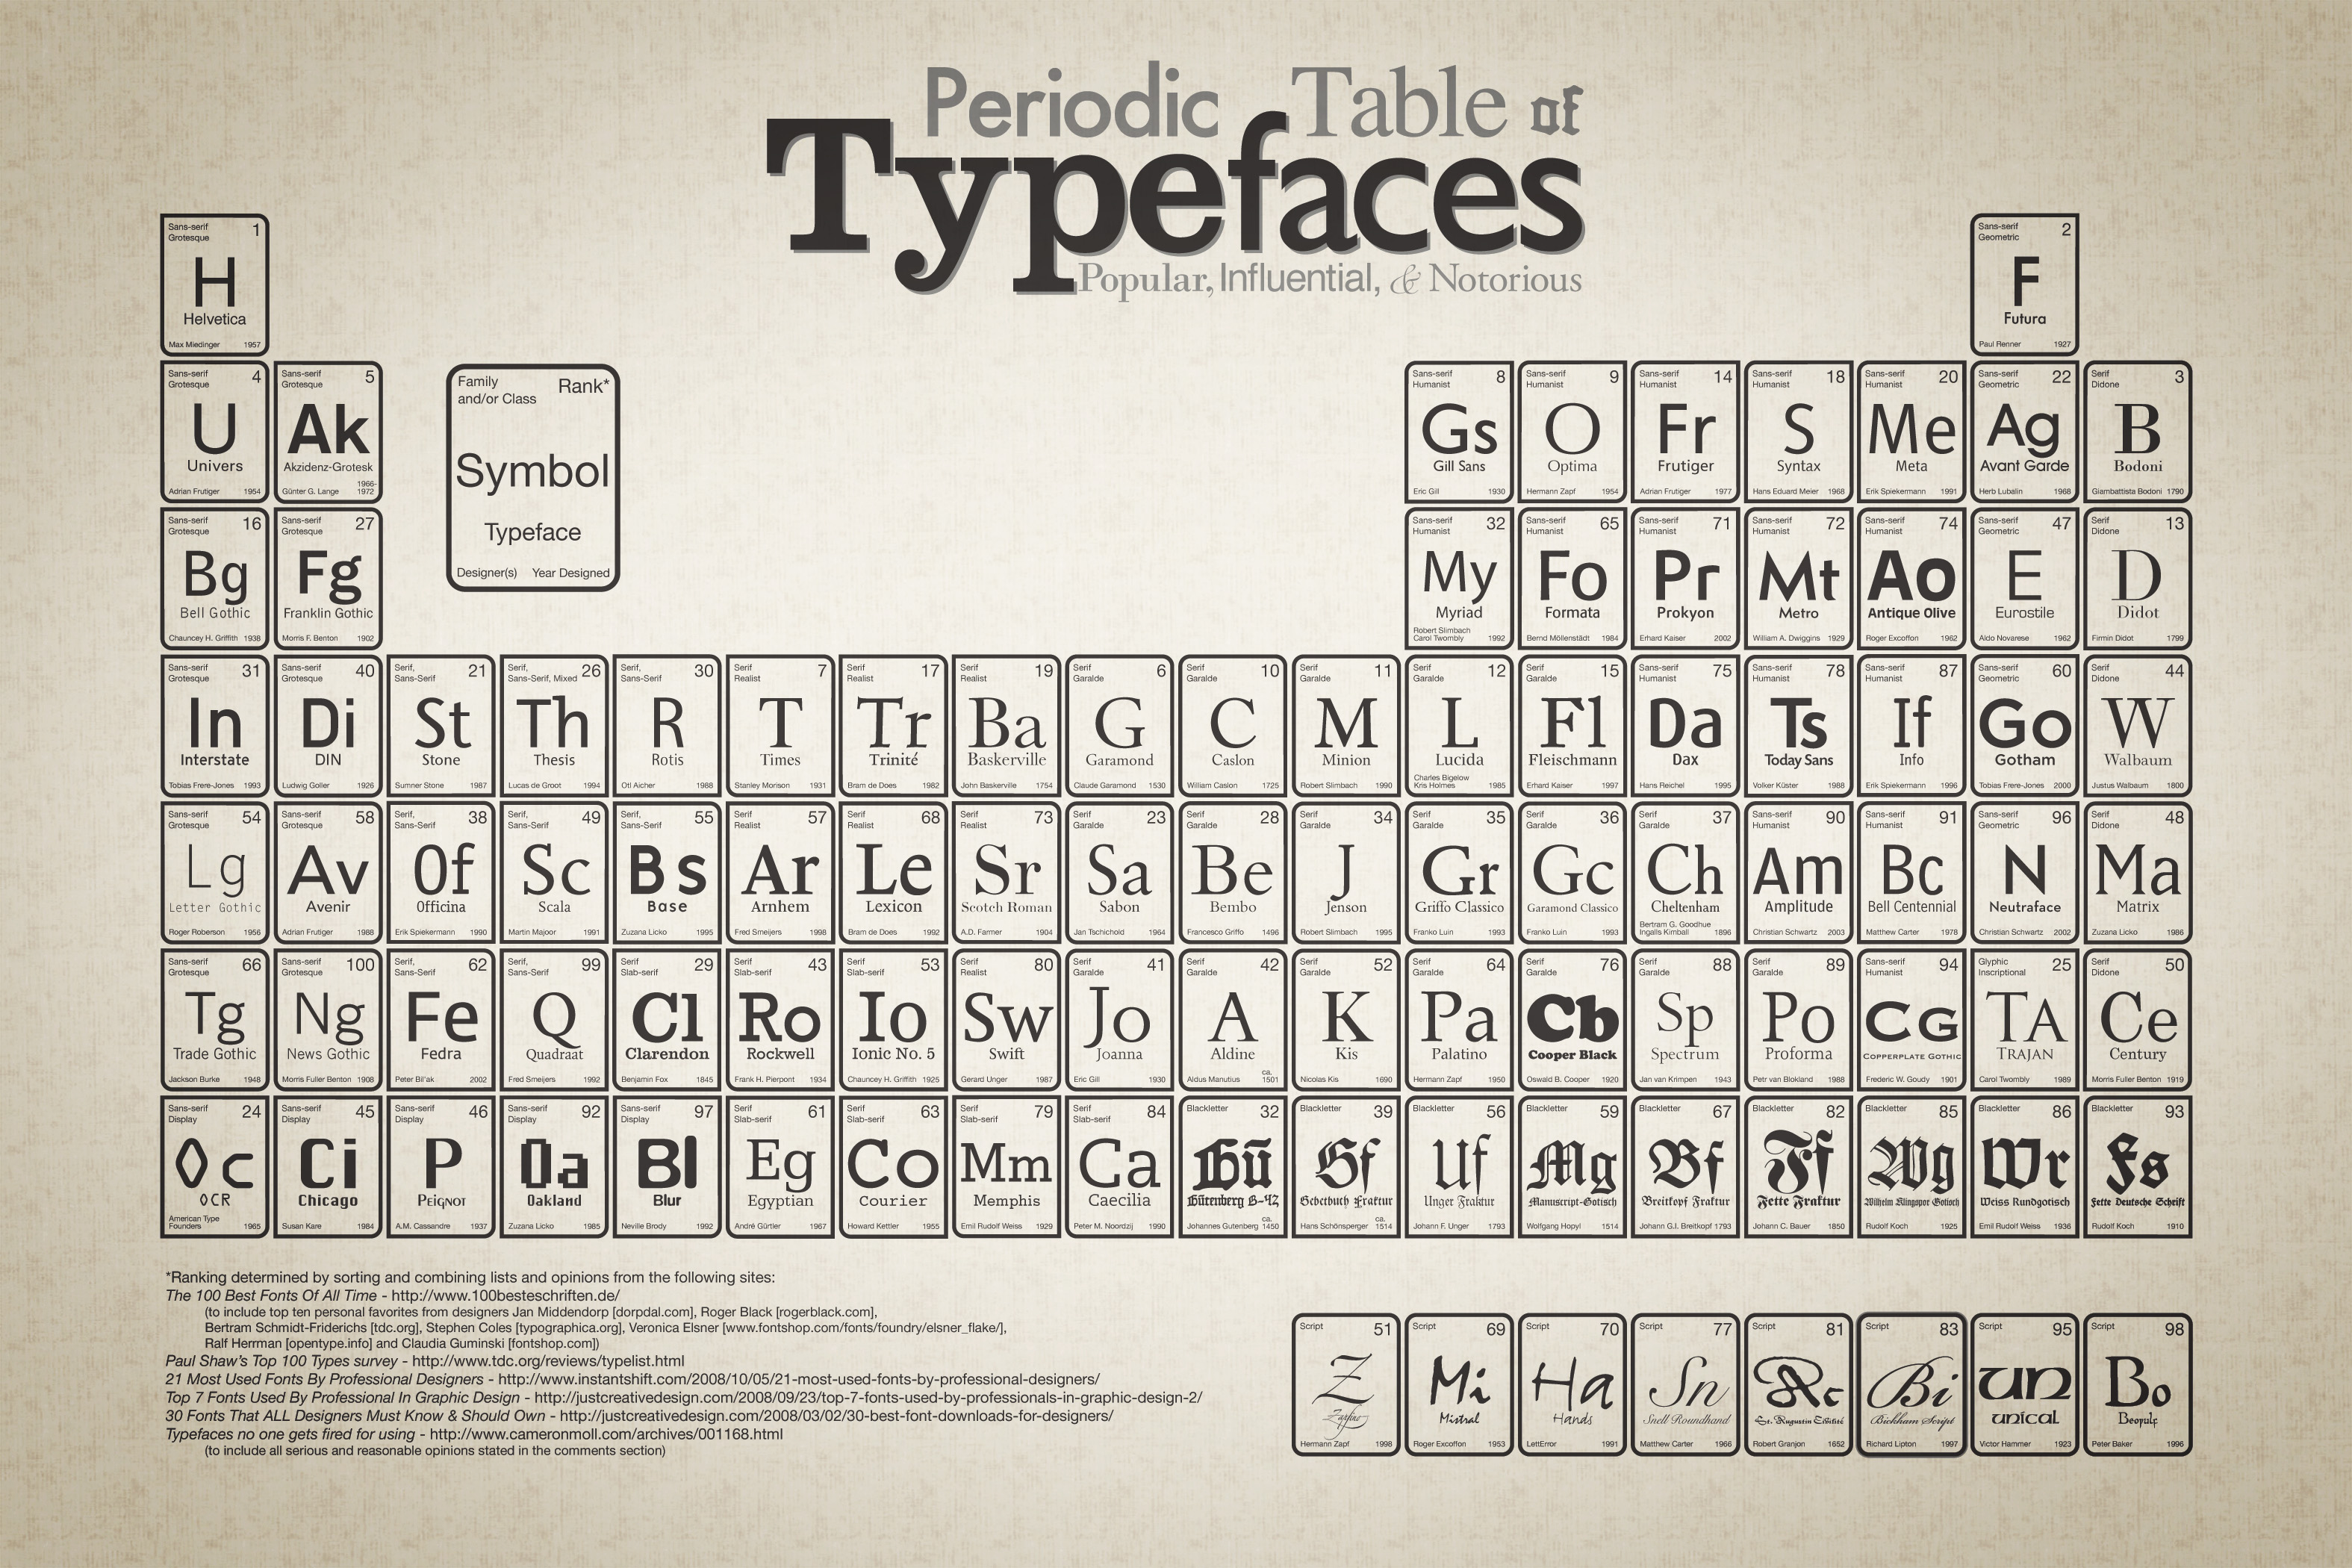 http://logobr.files.wordpress.com/2009/03/periodic_table_of_typefaces_large.jpg